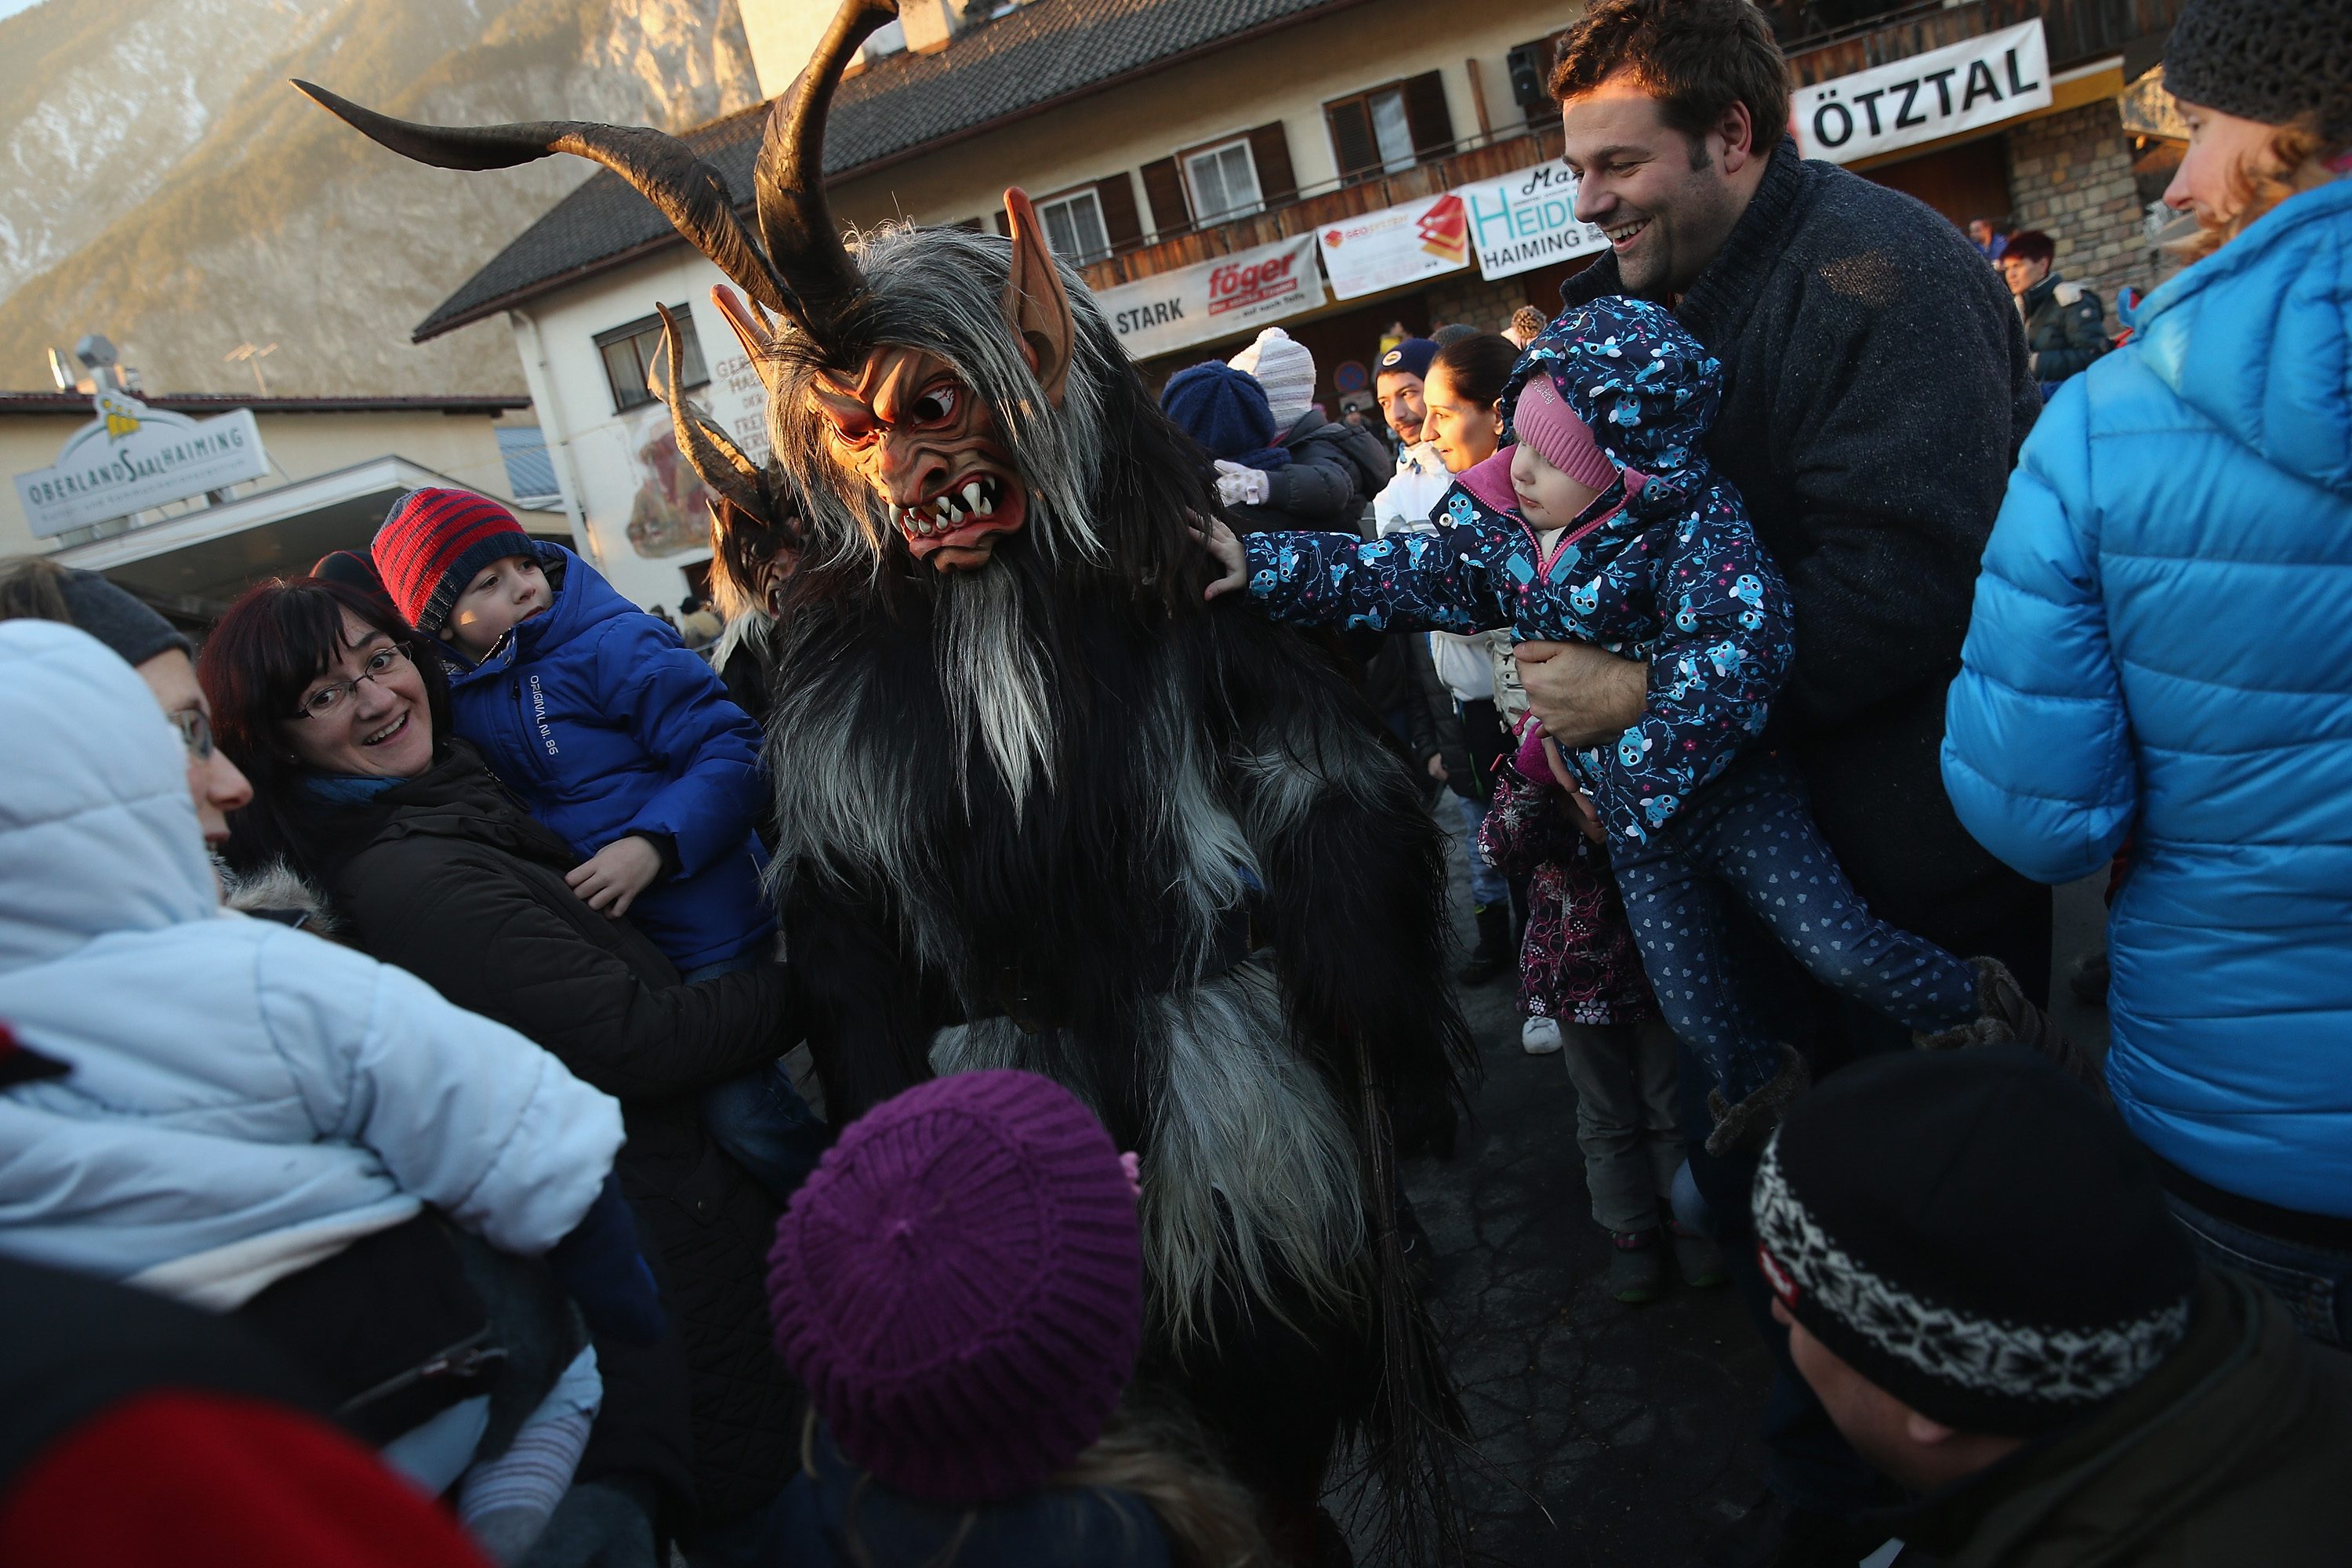 A member of the Haiminger Krampusgruppe dressed as the Krampus creature, an Austrian winter solstice ritual, lets himself be touched by onlookers prior to the annual Krampus night in Tyrol on Dec. 1, 2013.